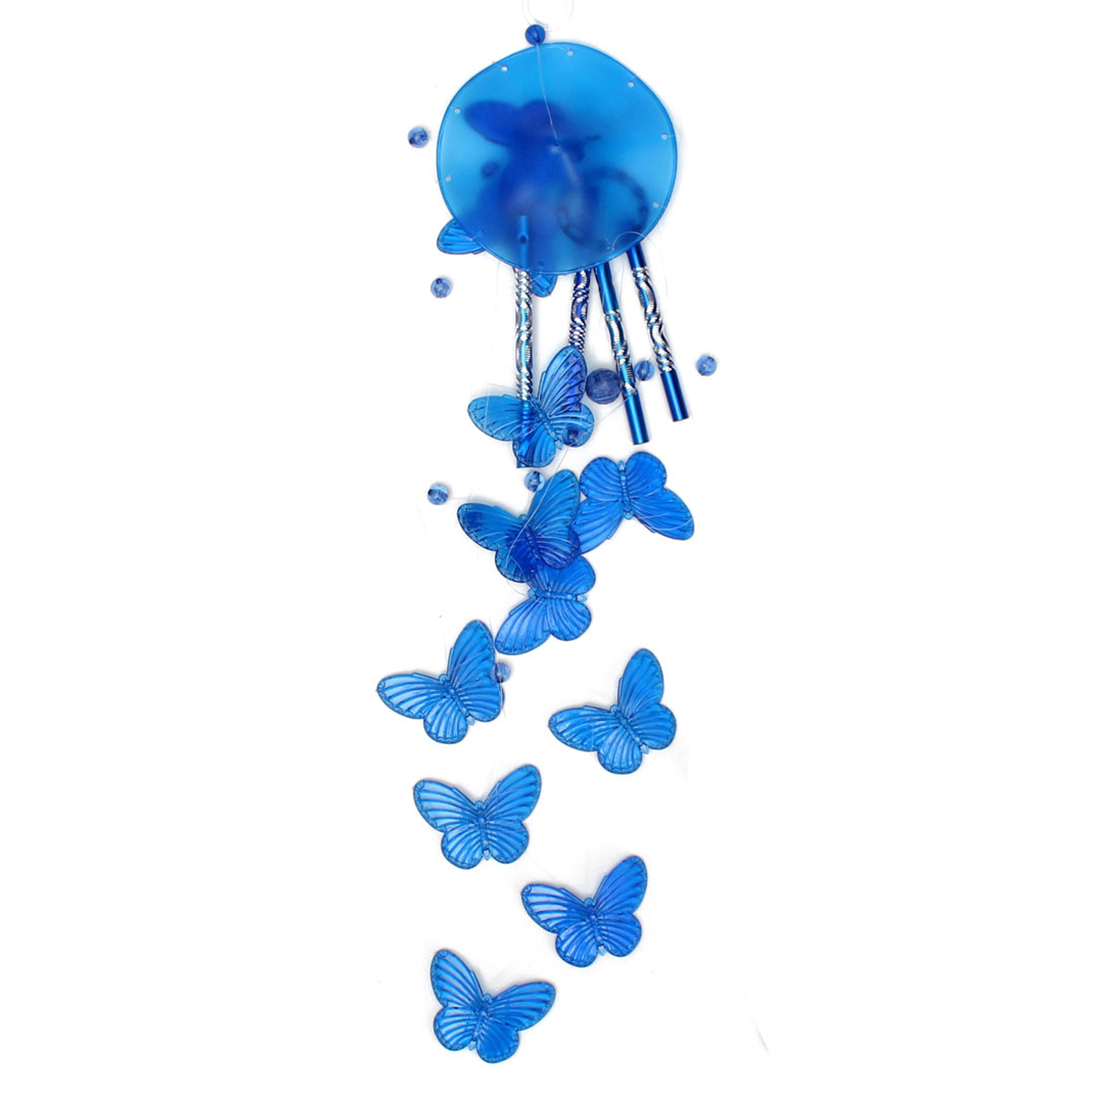 Wind chime sound tubes Butterfly Feng Shui windchimes House Decoration, Blue